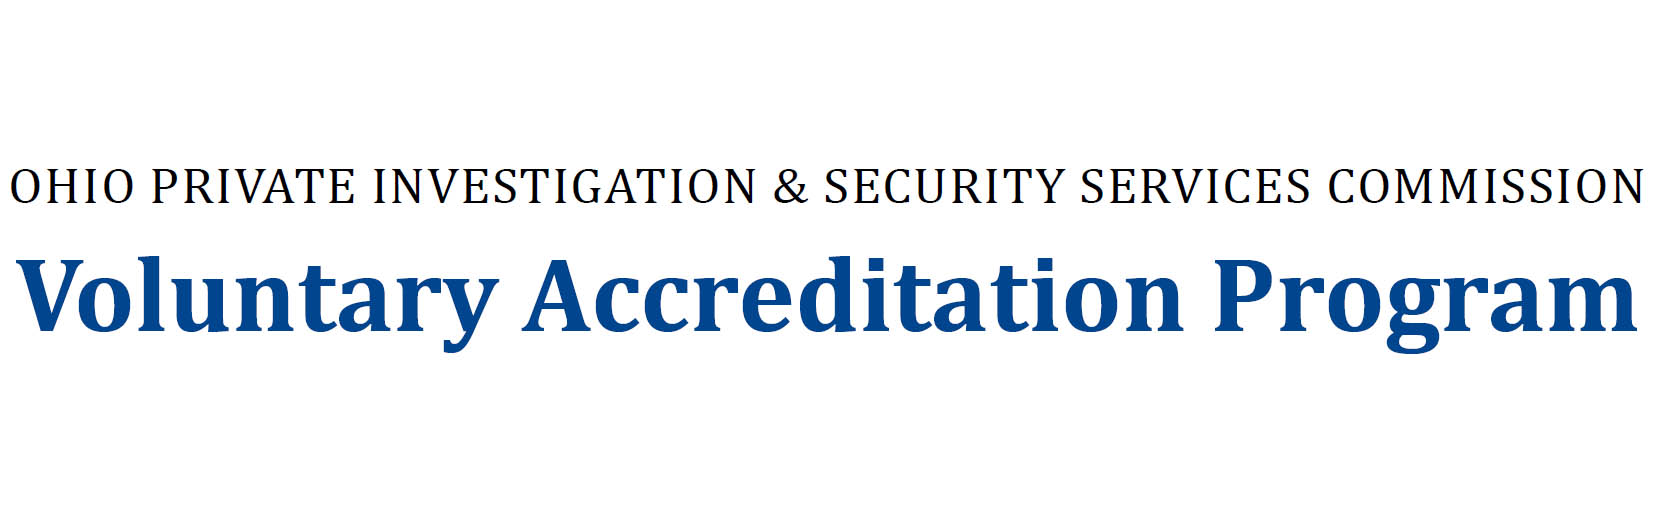 Voluntary Accreditation Program